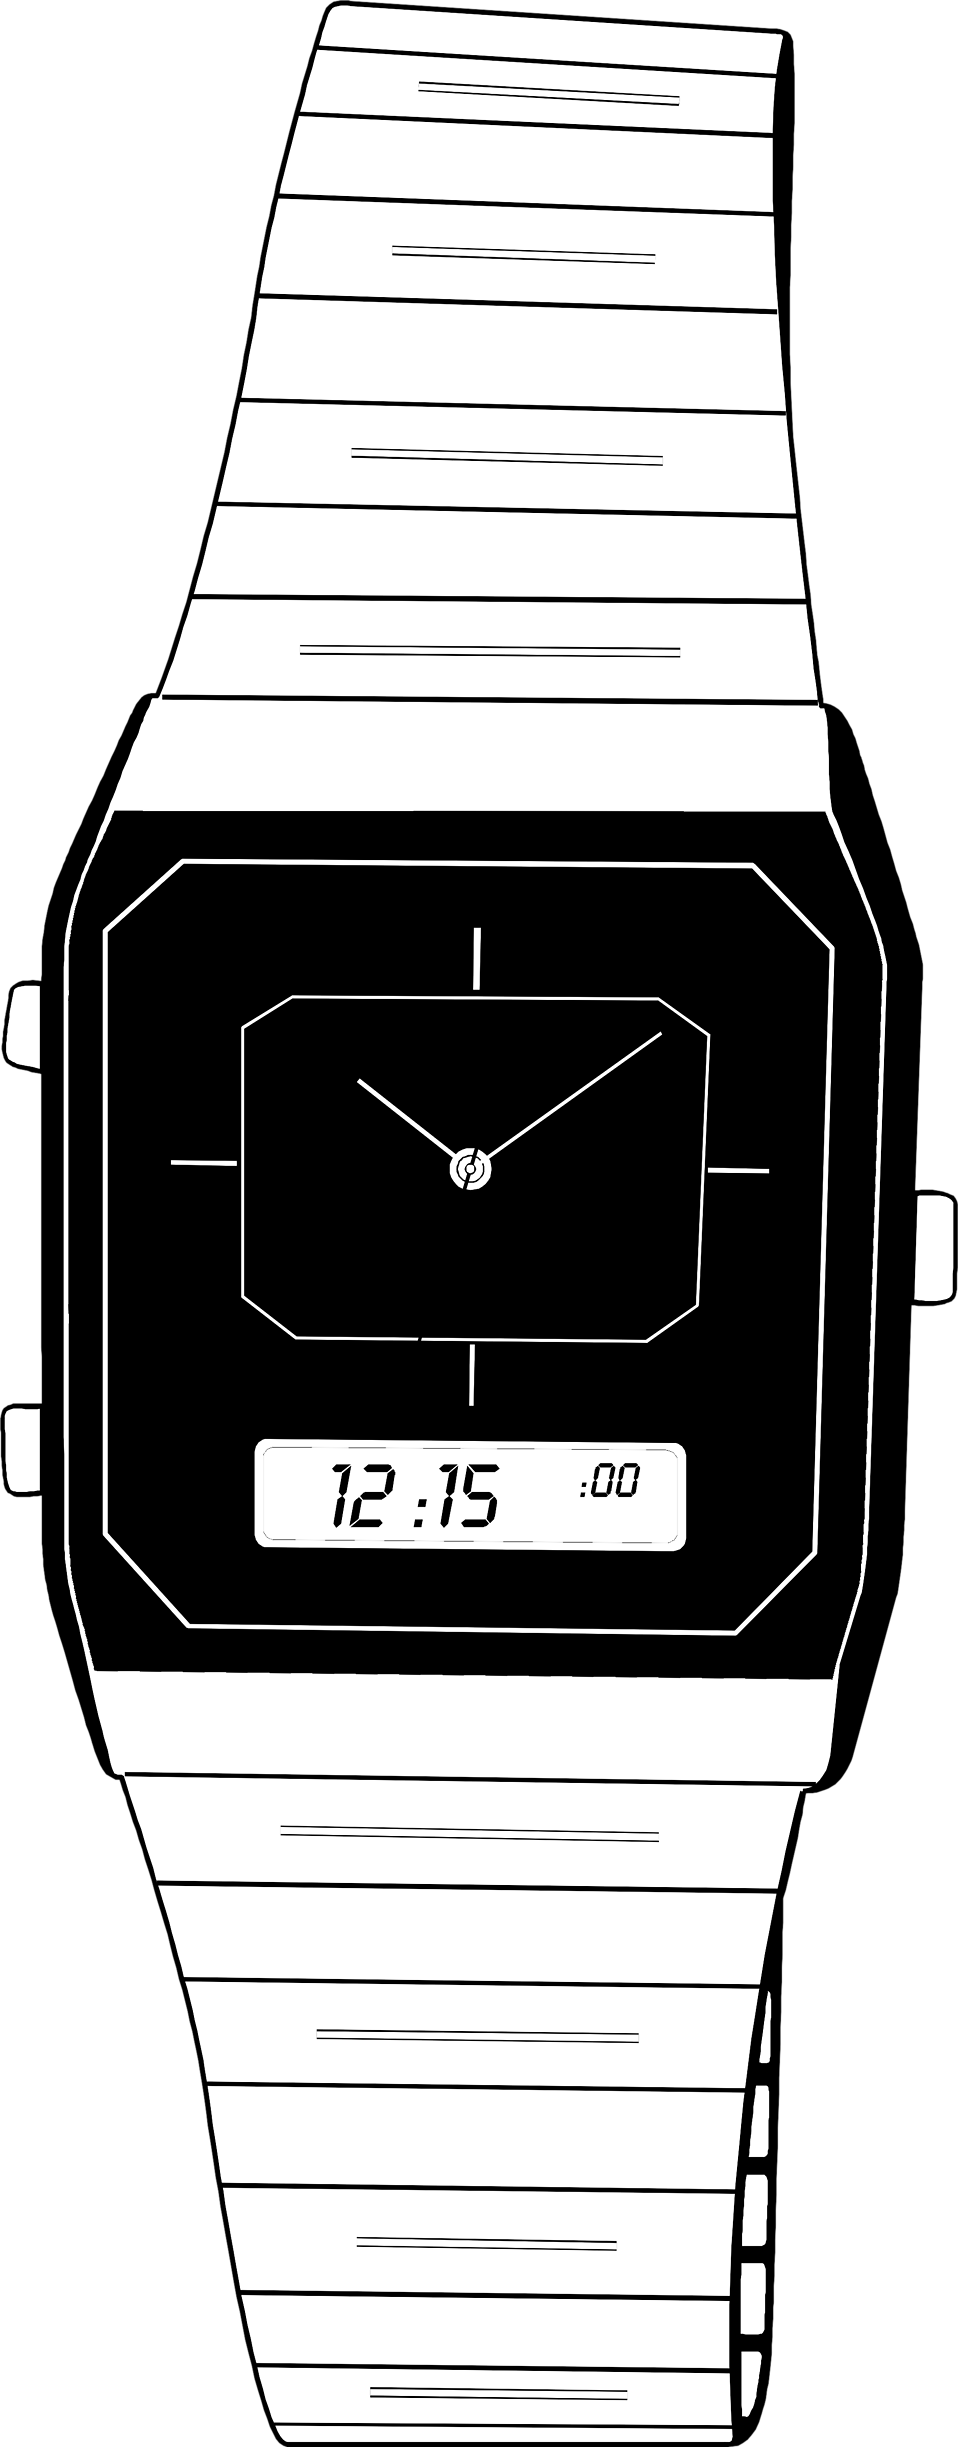 Illustration of a digital wrist watch : Free Stock Photo